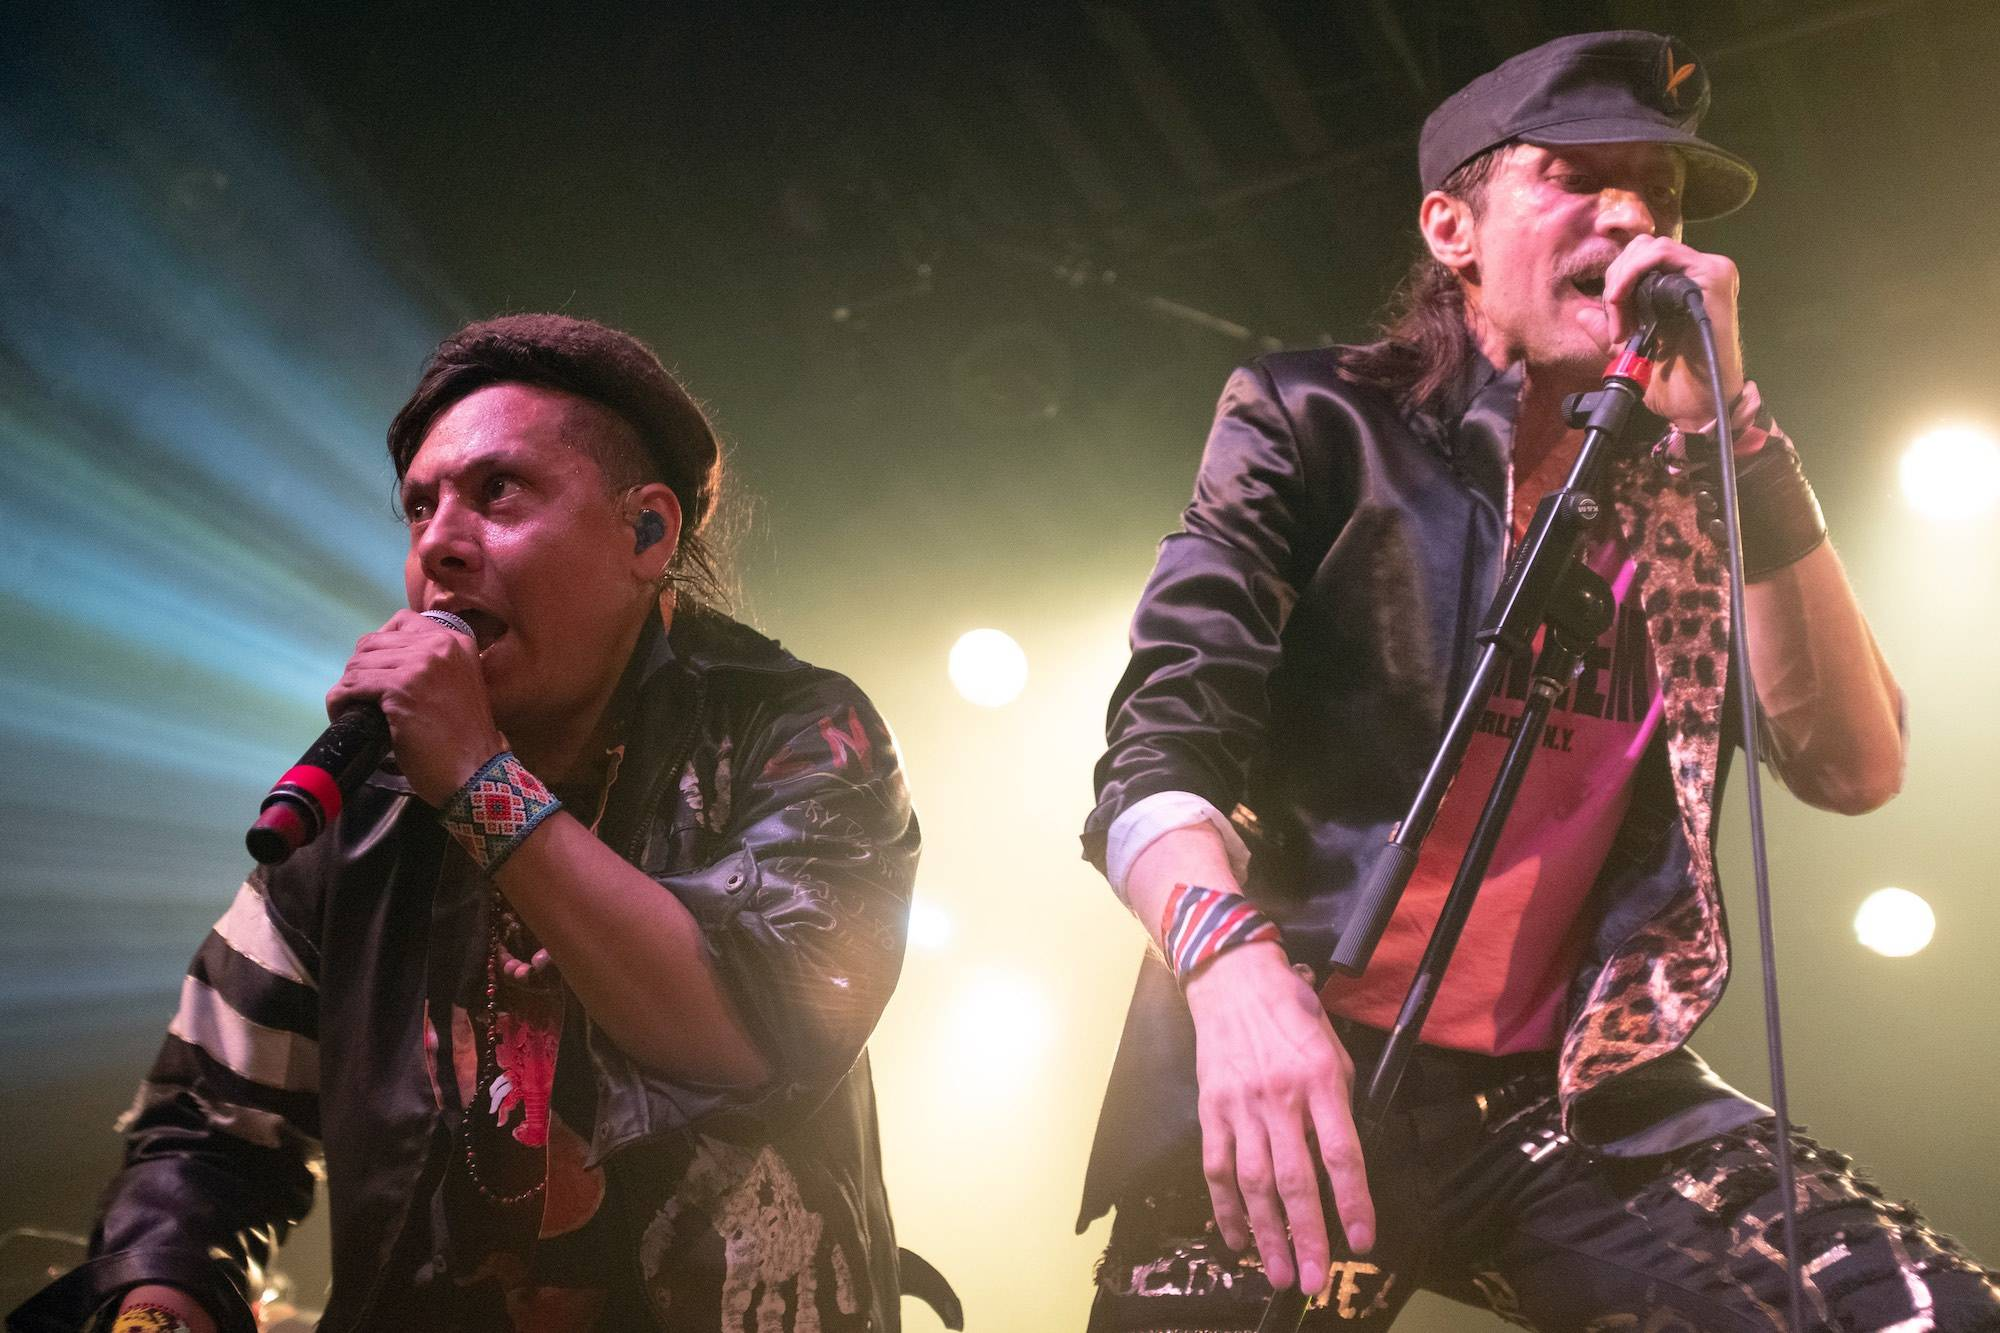 Gogol Bordello at the Commodore Ballroom, Vancouver, May 24 2019. Scott Alexander photo.